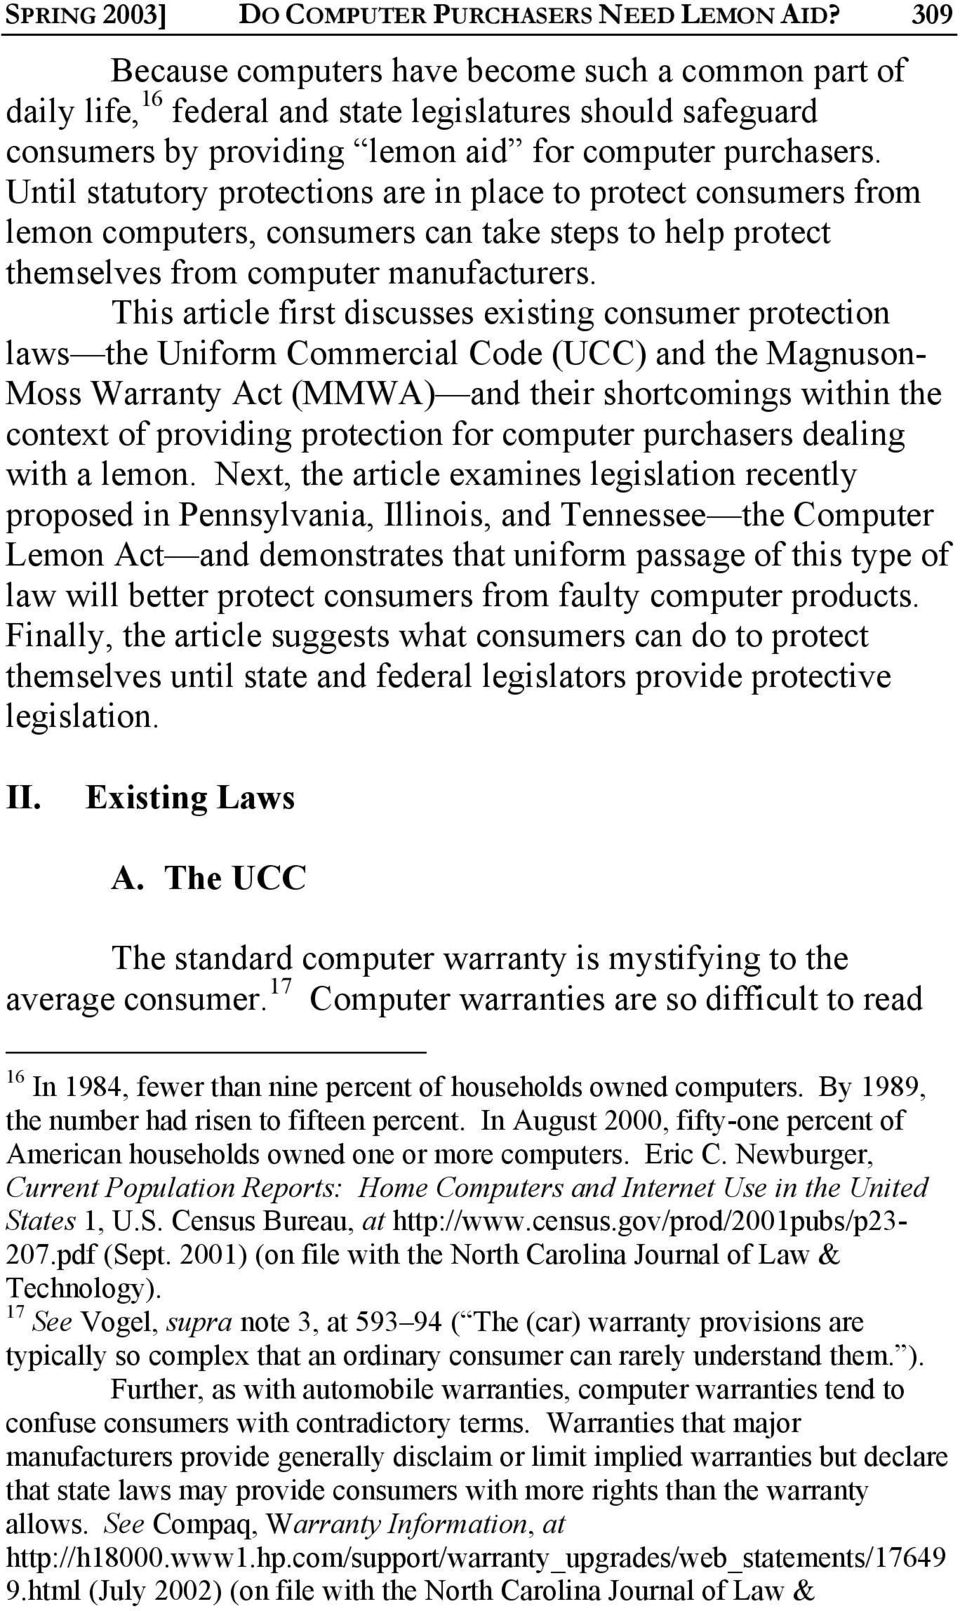 Until statutory protections are in place to protect consumers from lemon computers, consumers can take steps to help protect themselves from computer manufacturers.